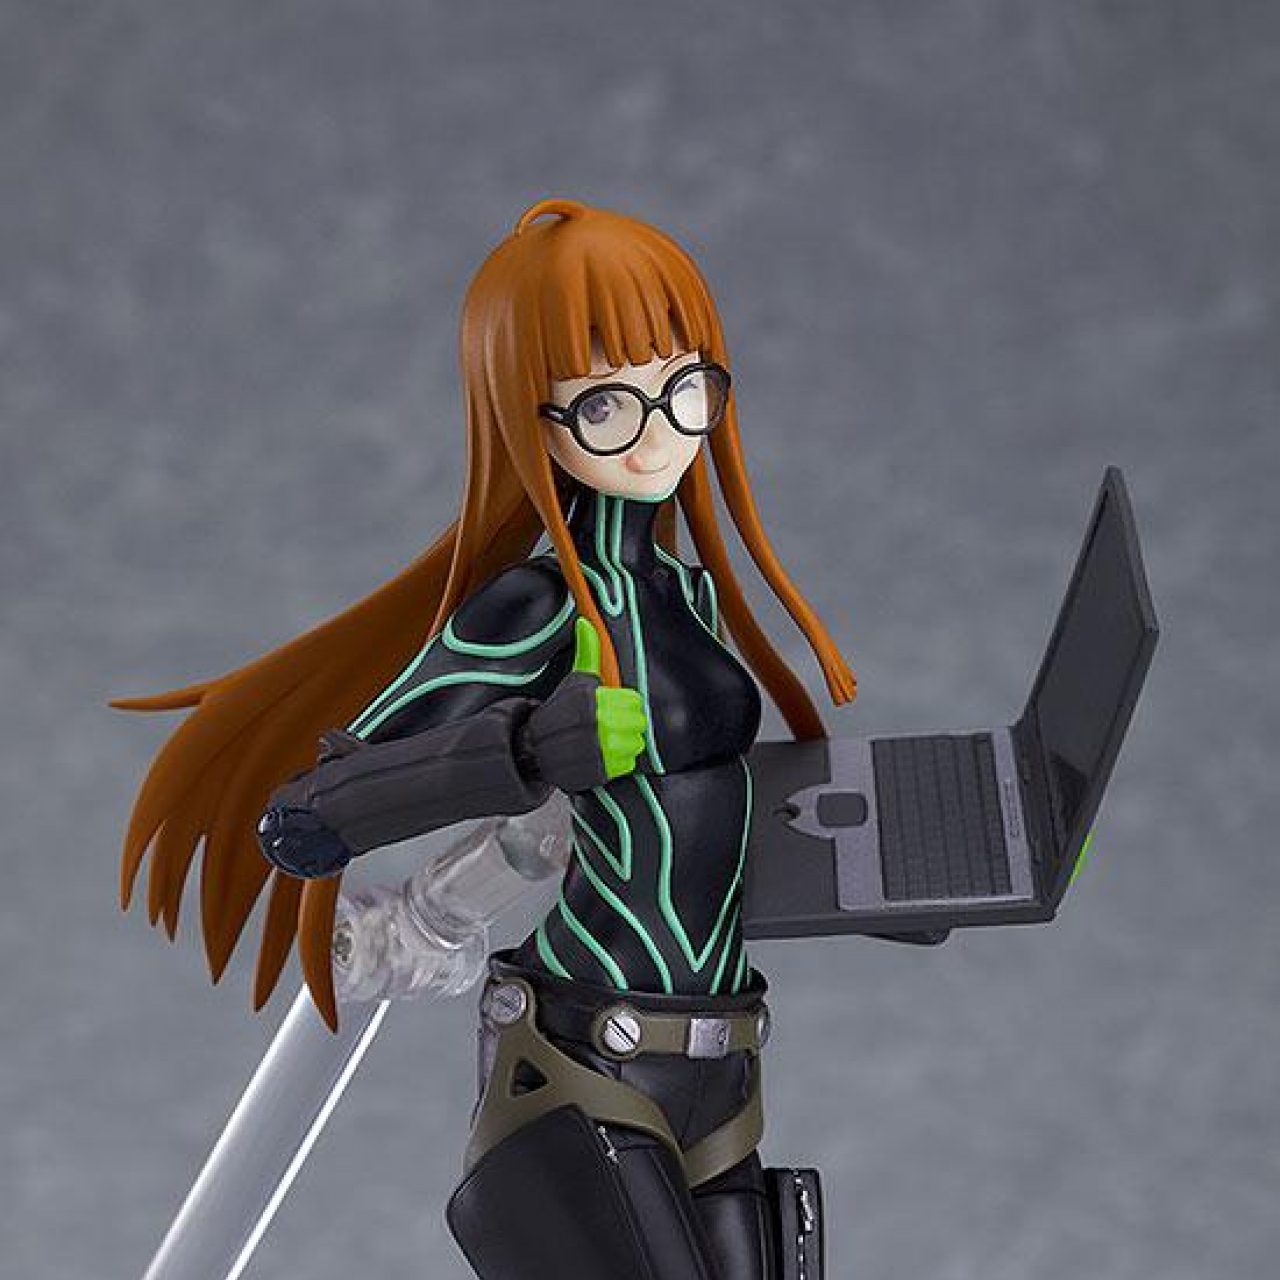 Persona 5 The Animation Figma Action Figure Oracle 14 cm